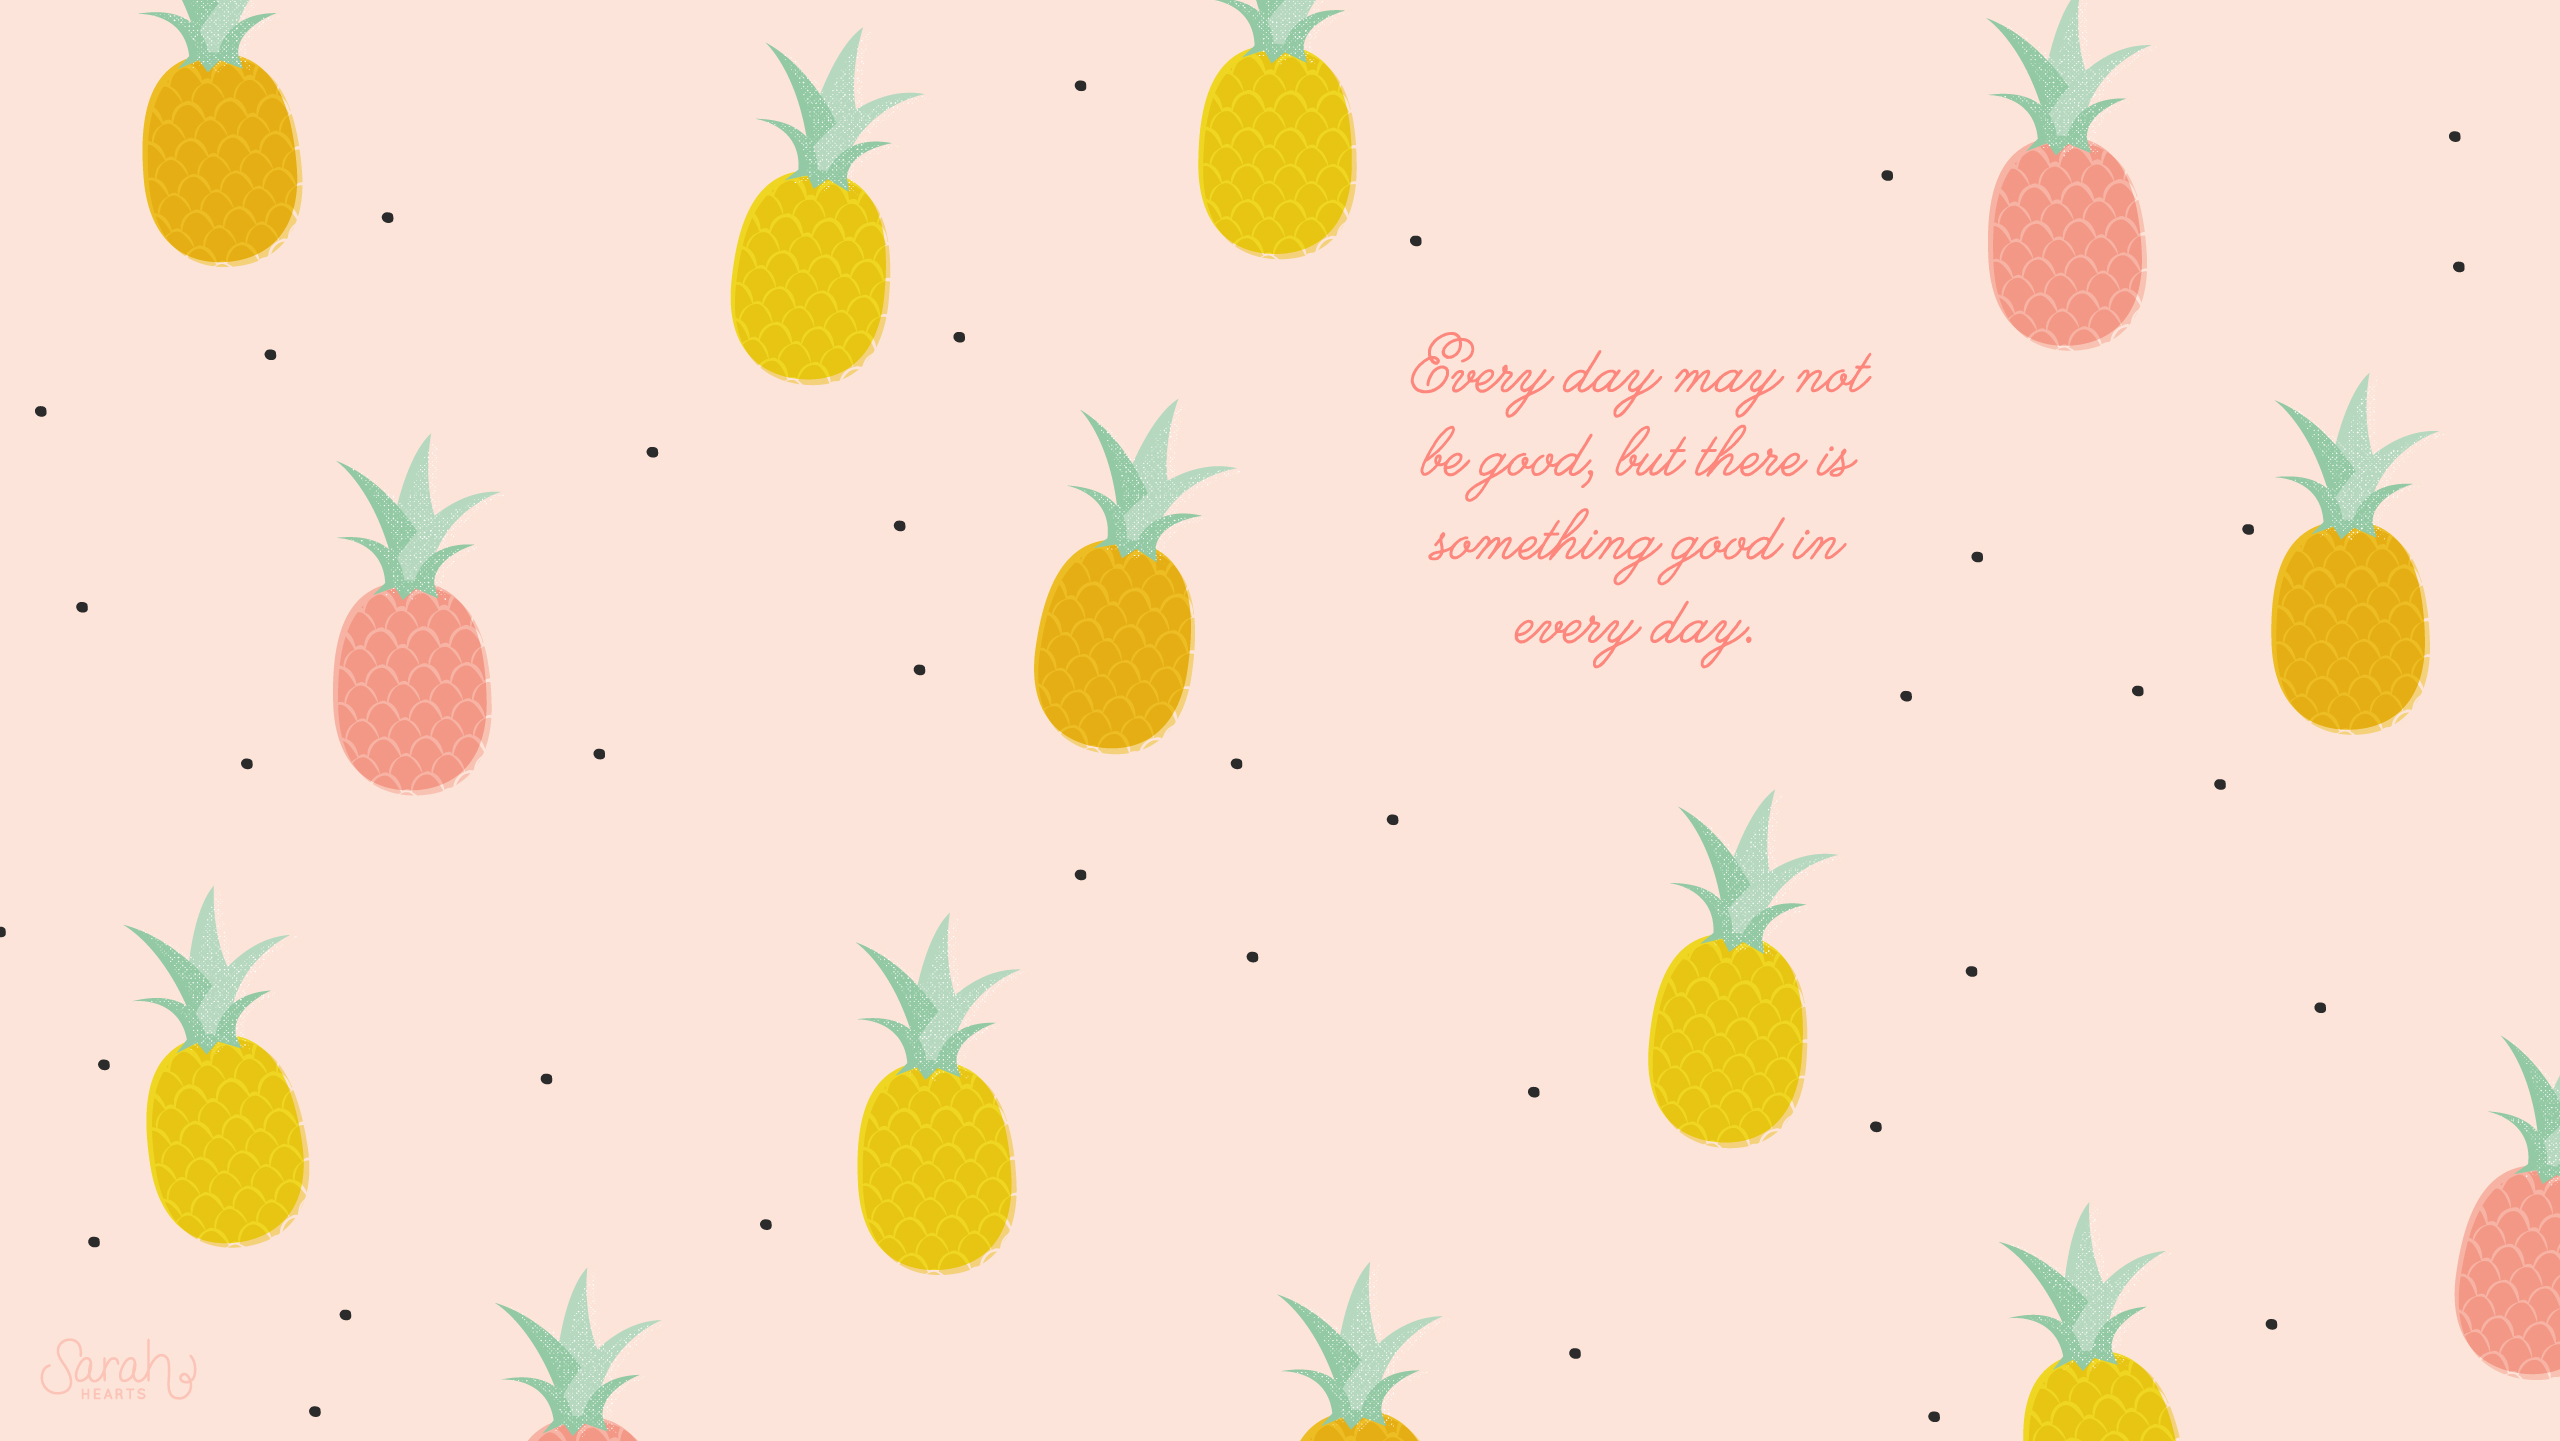 August 2014 Pineapple Calendar Wallpaper